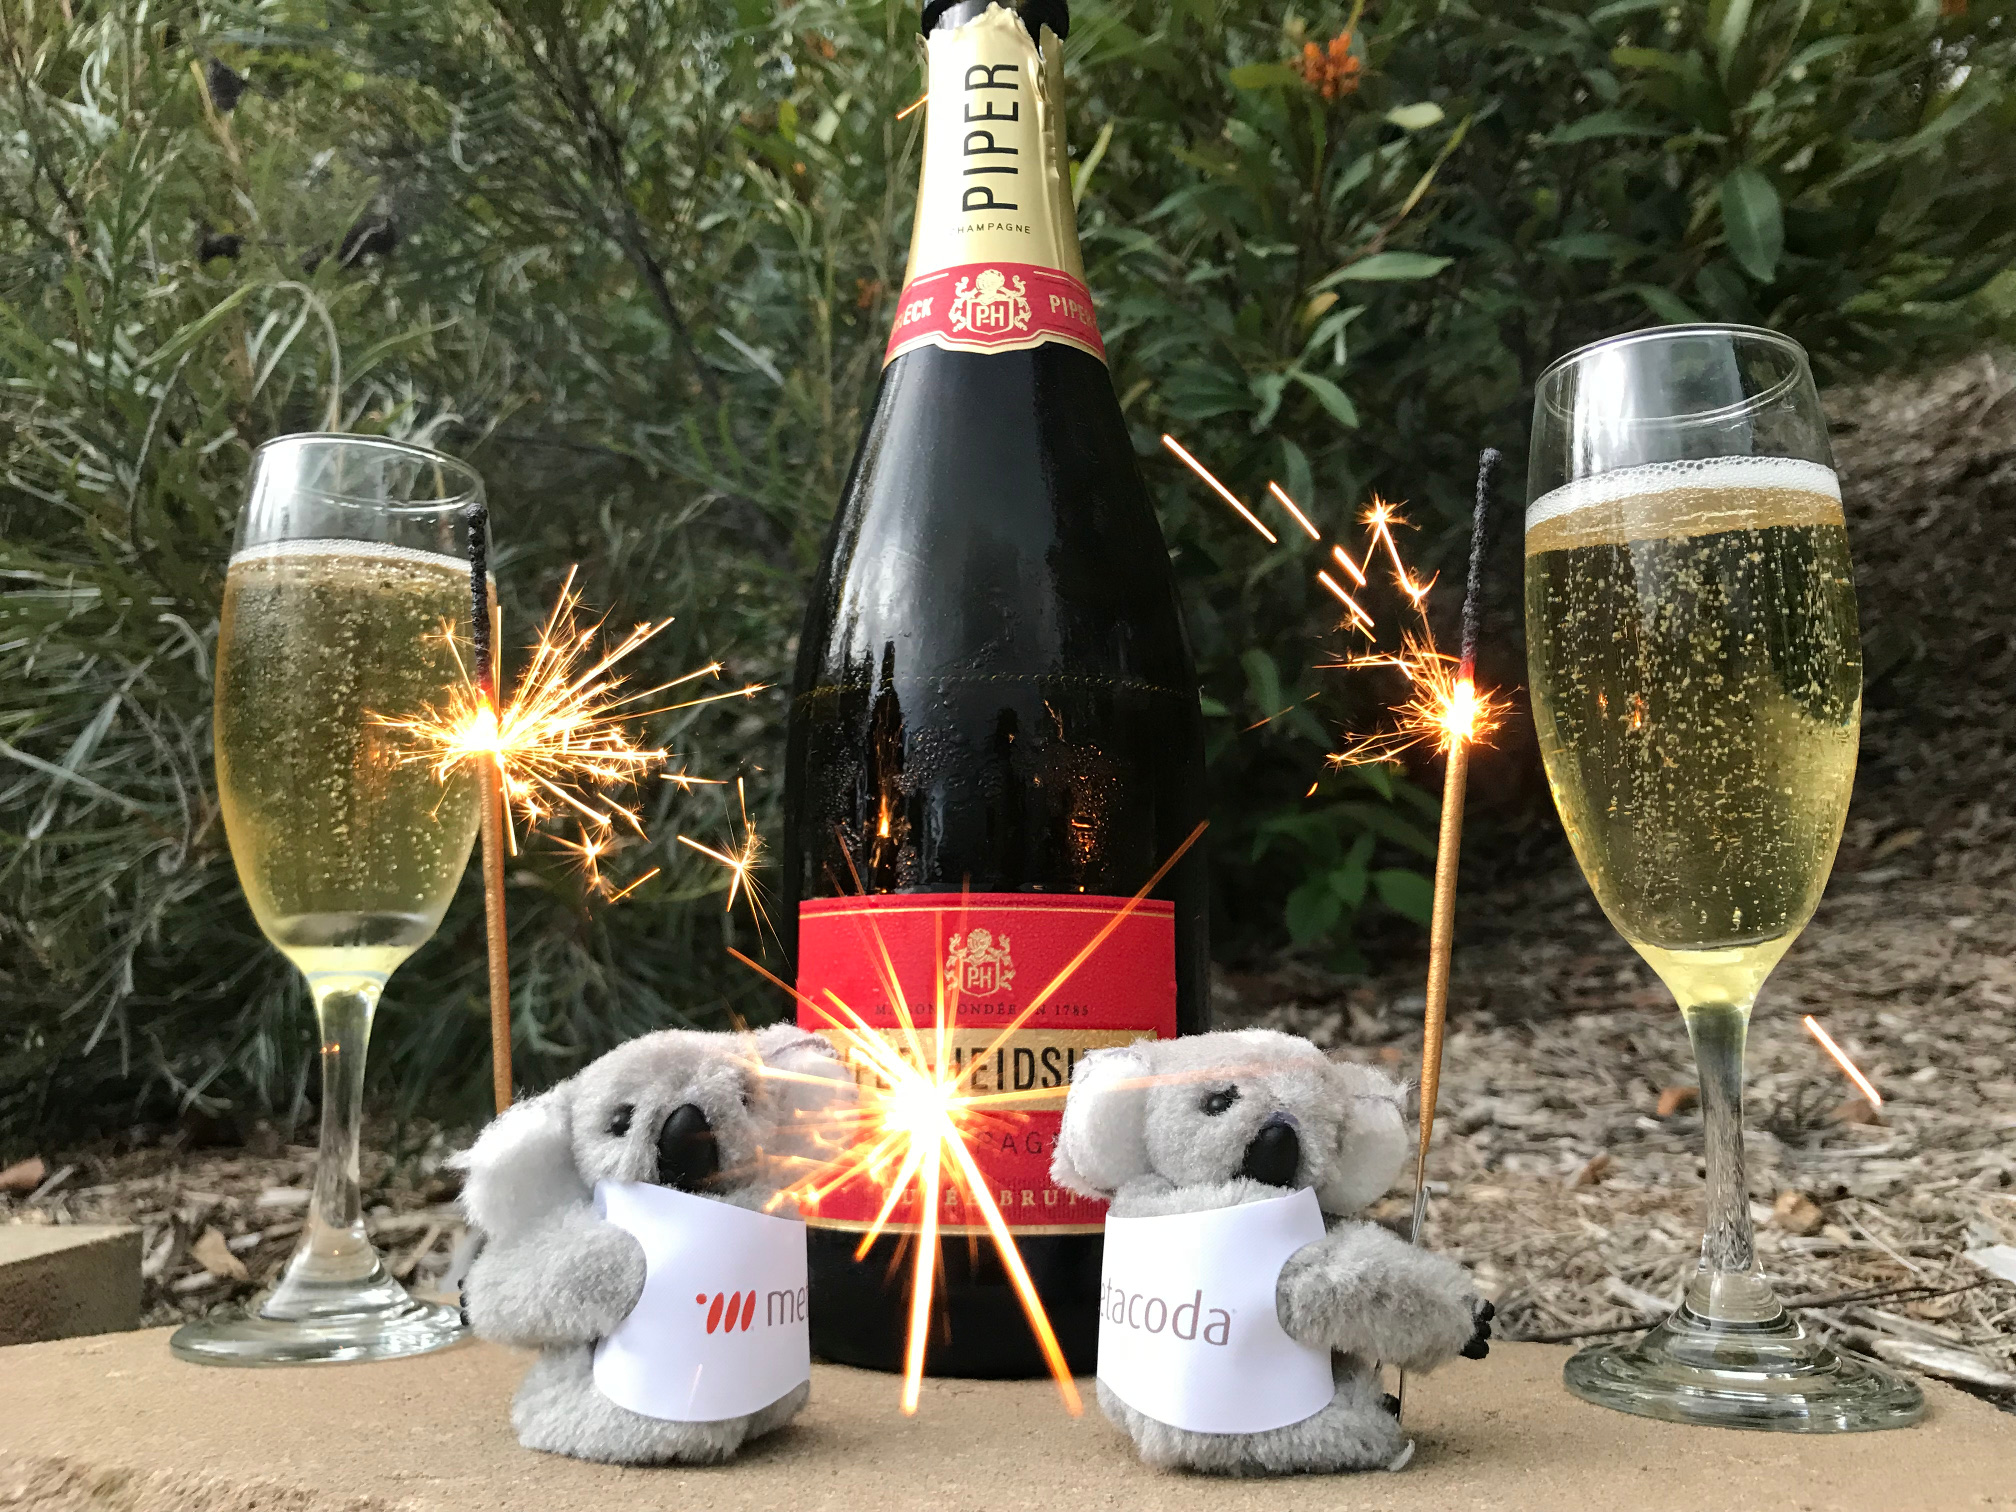 Metacoda Koalas celebrate the new year, 2018